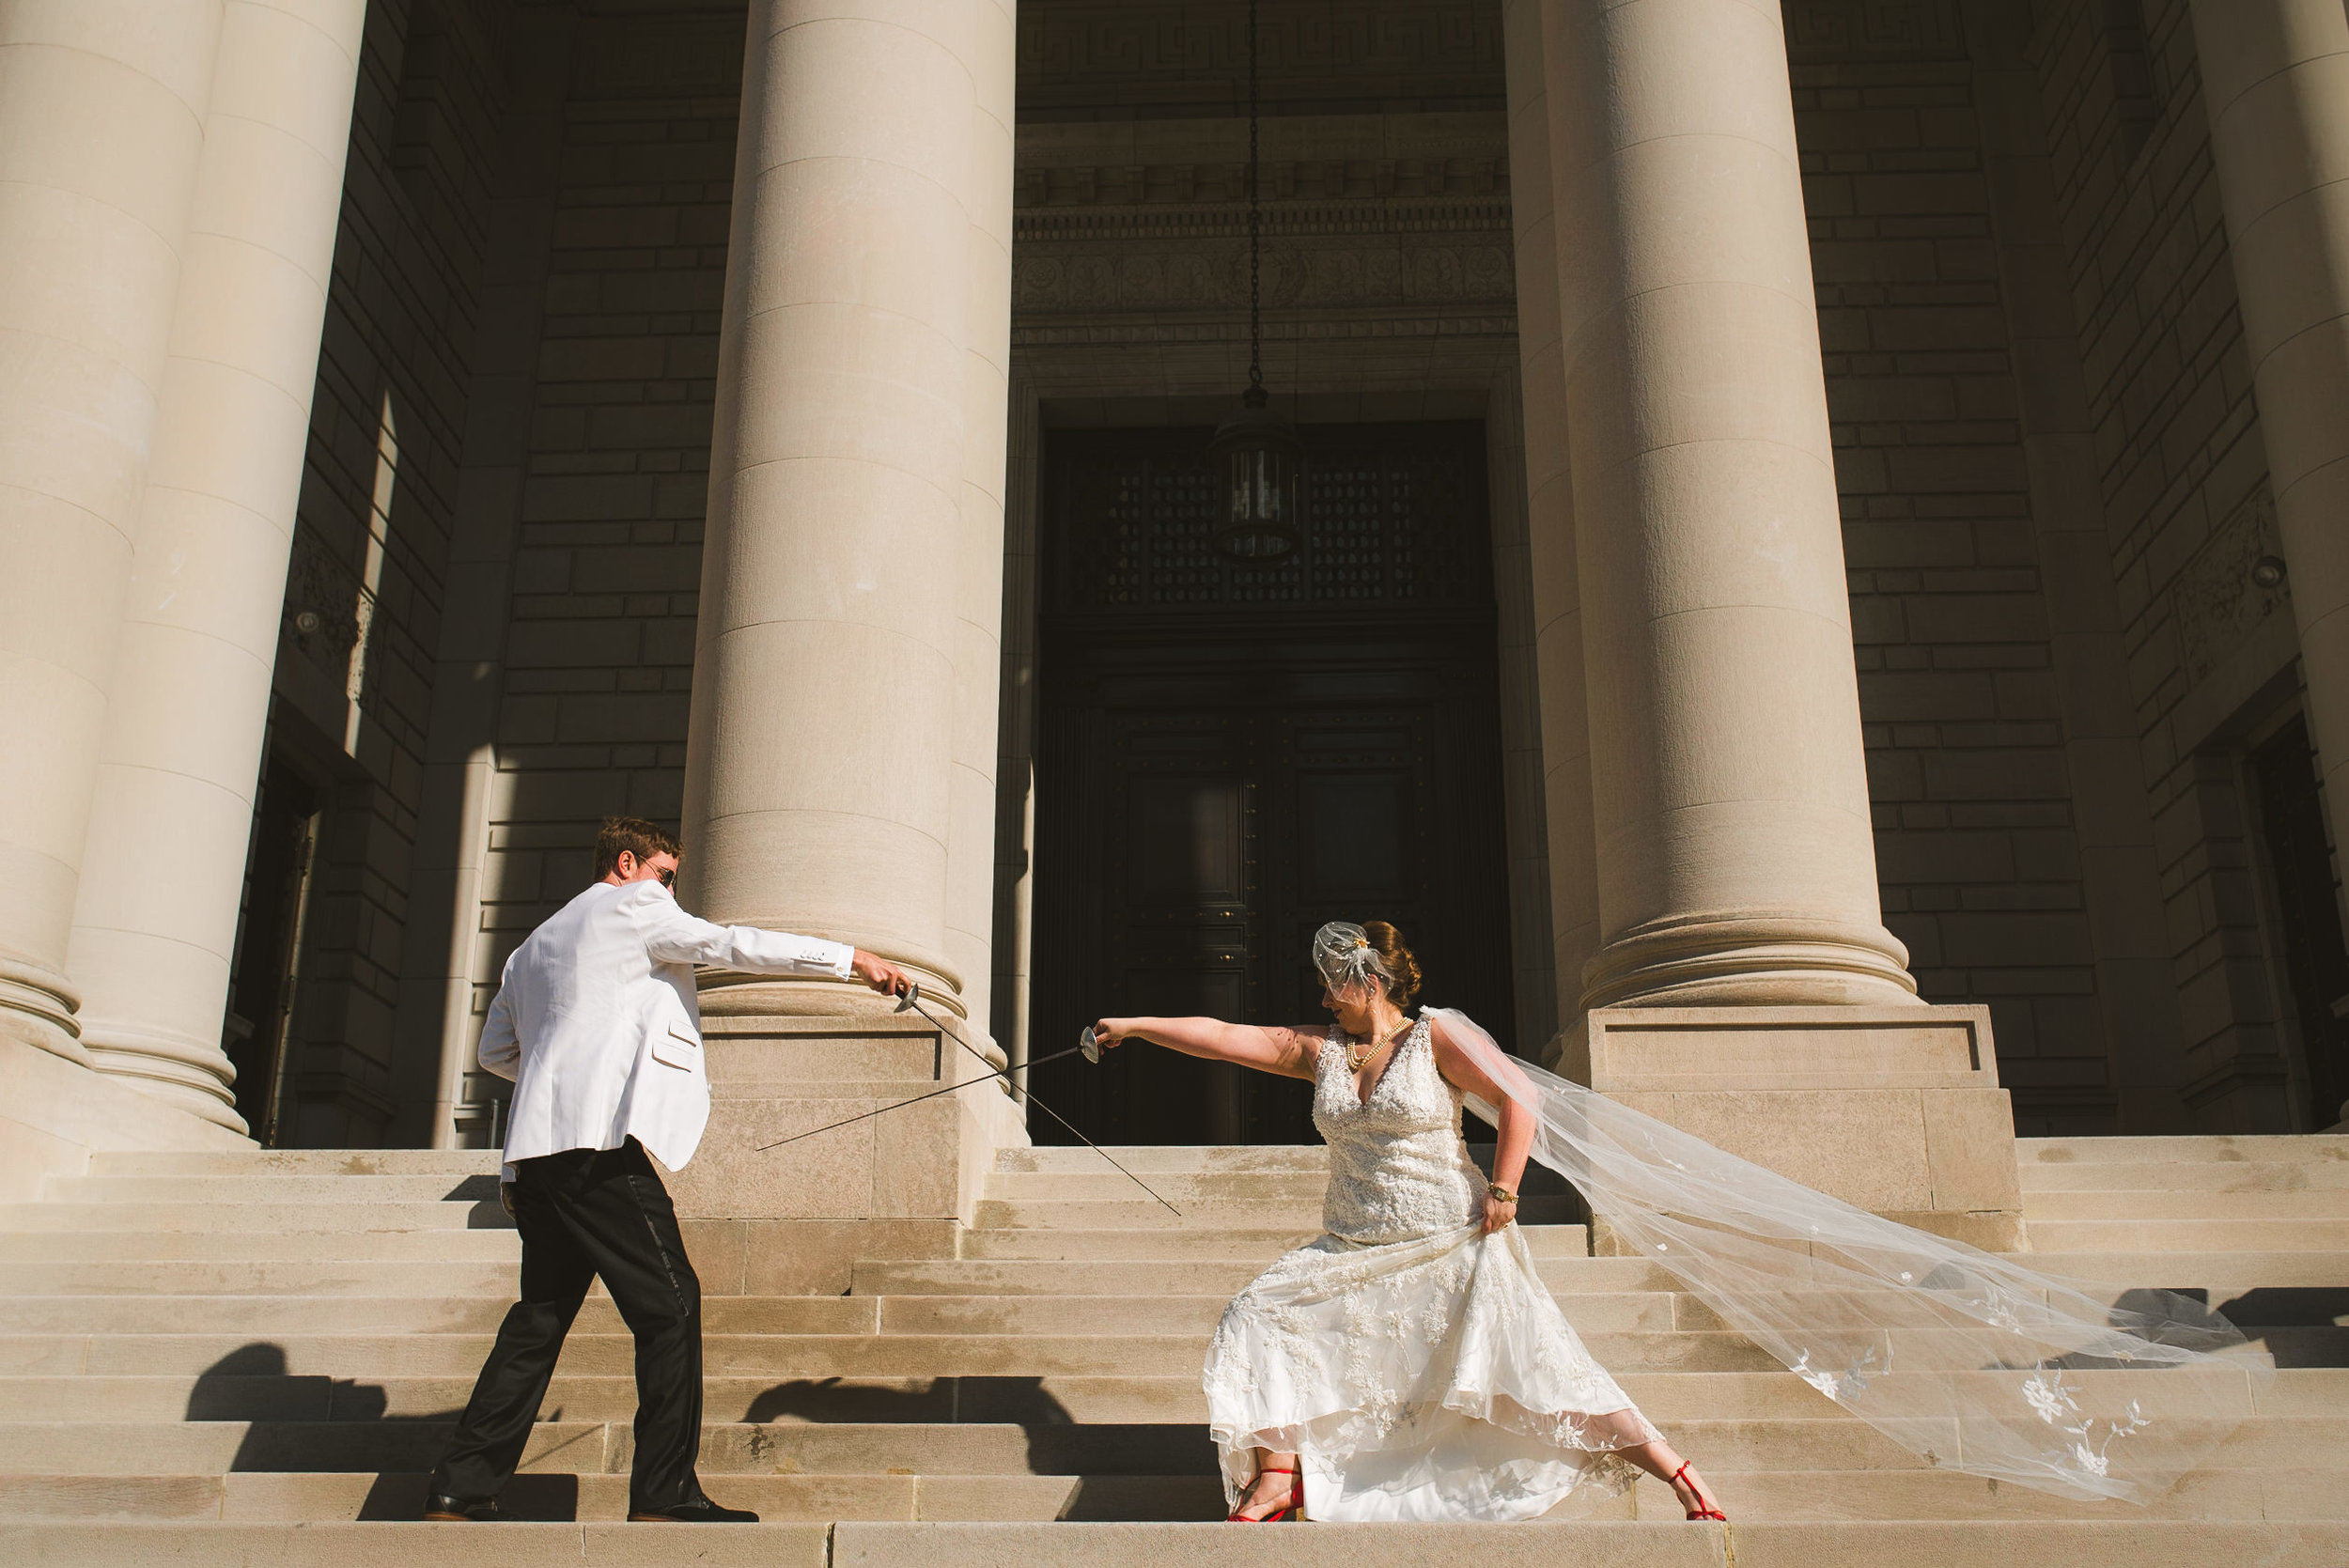 Carnegie Institution for Science Wedding Photographer Mantas Kubilinskas-11.jpg